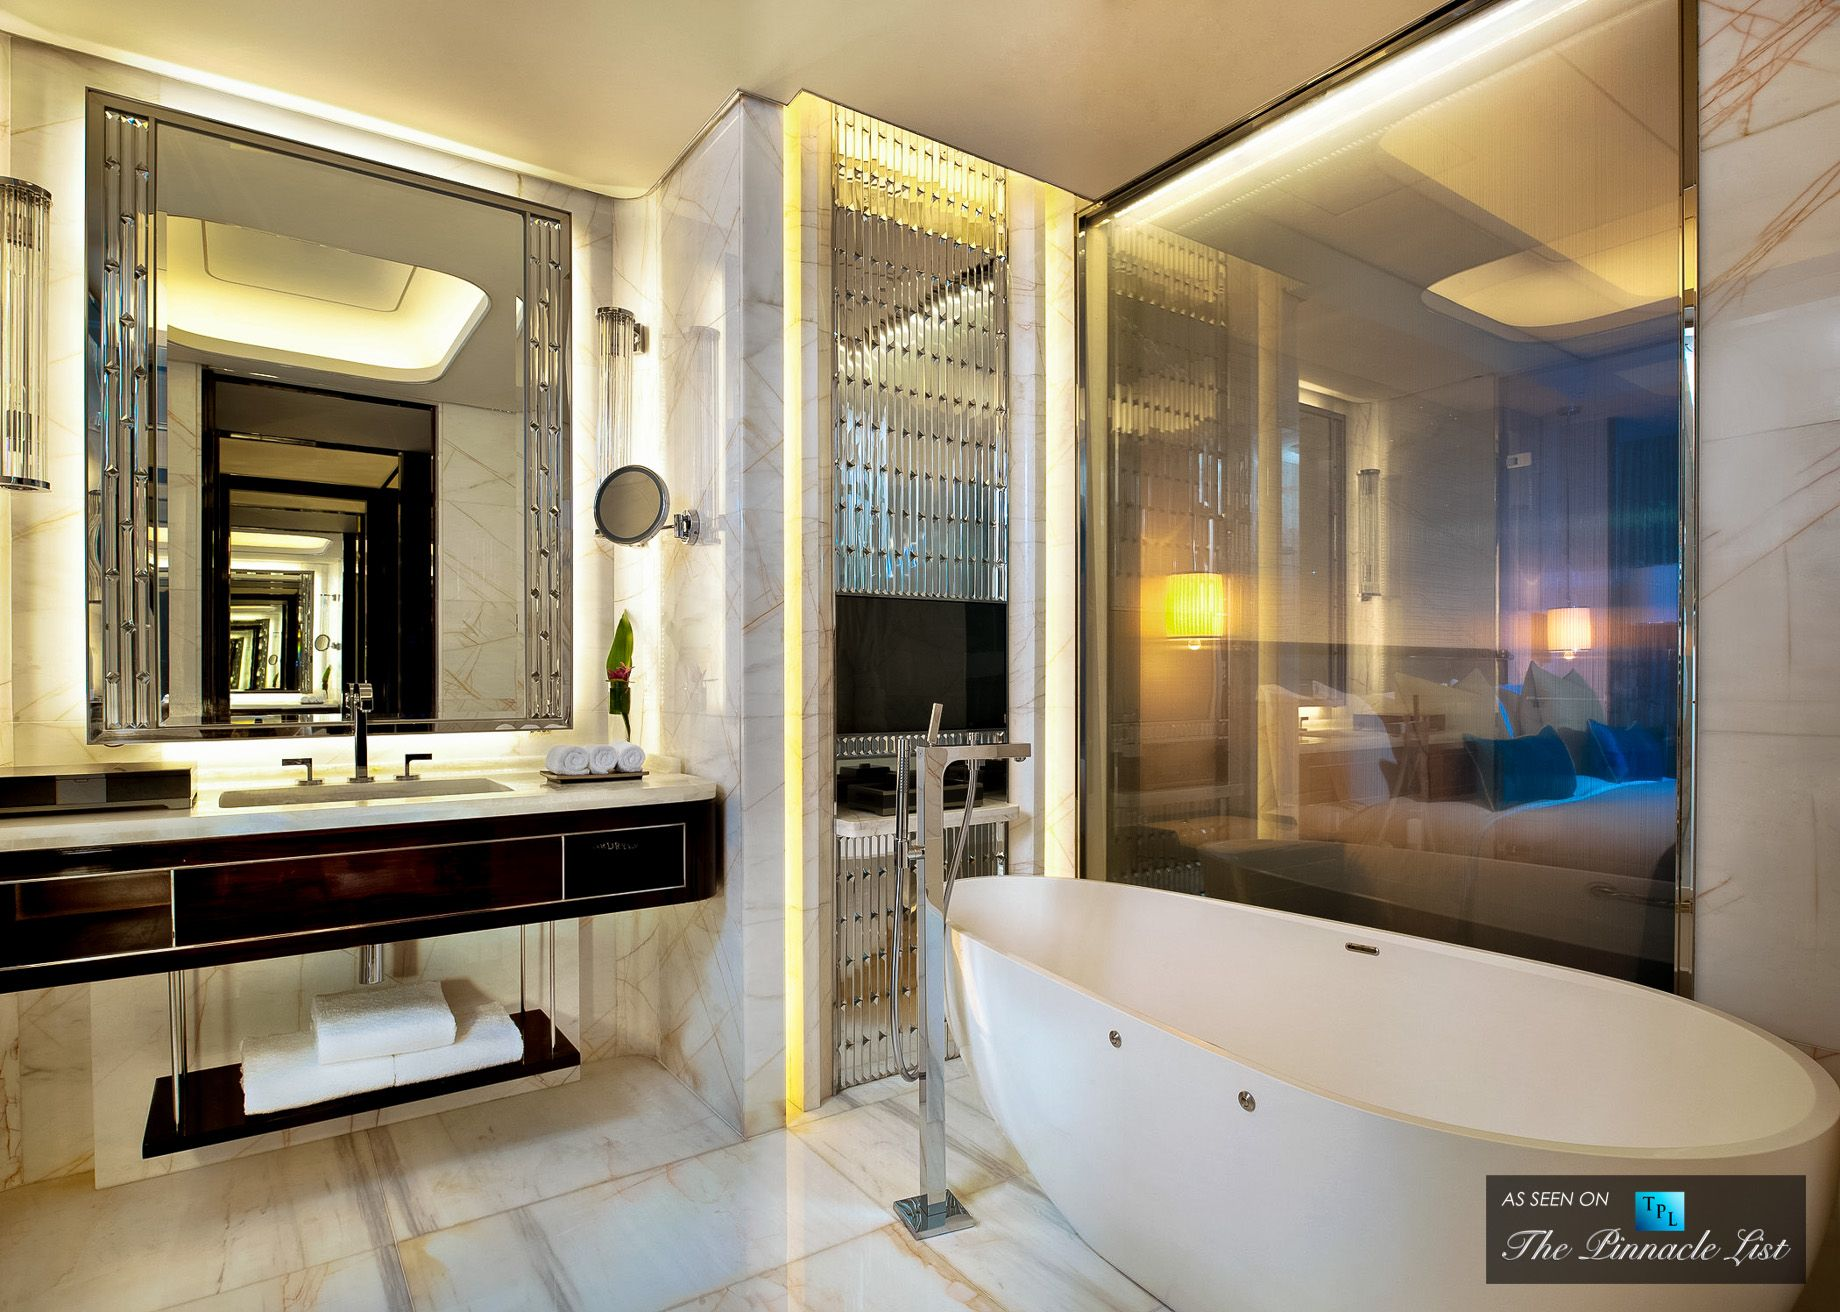 St Regis Luxury Hotel Shenzhen China Deluxe Bathroom Bathrooms Detailing Pinterest